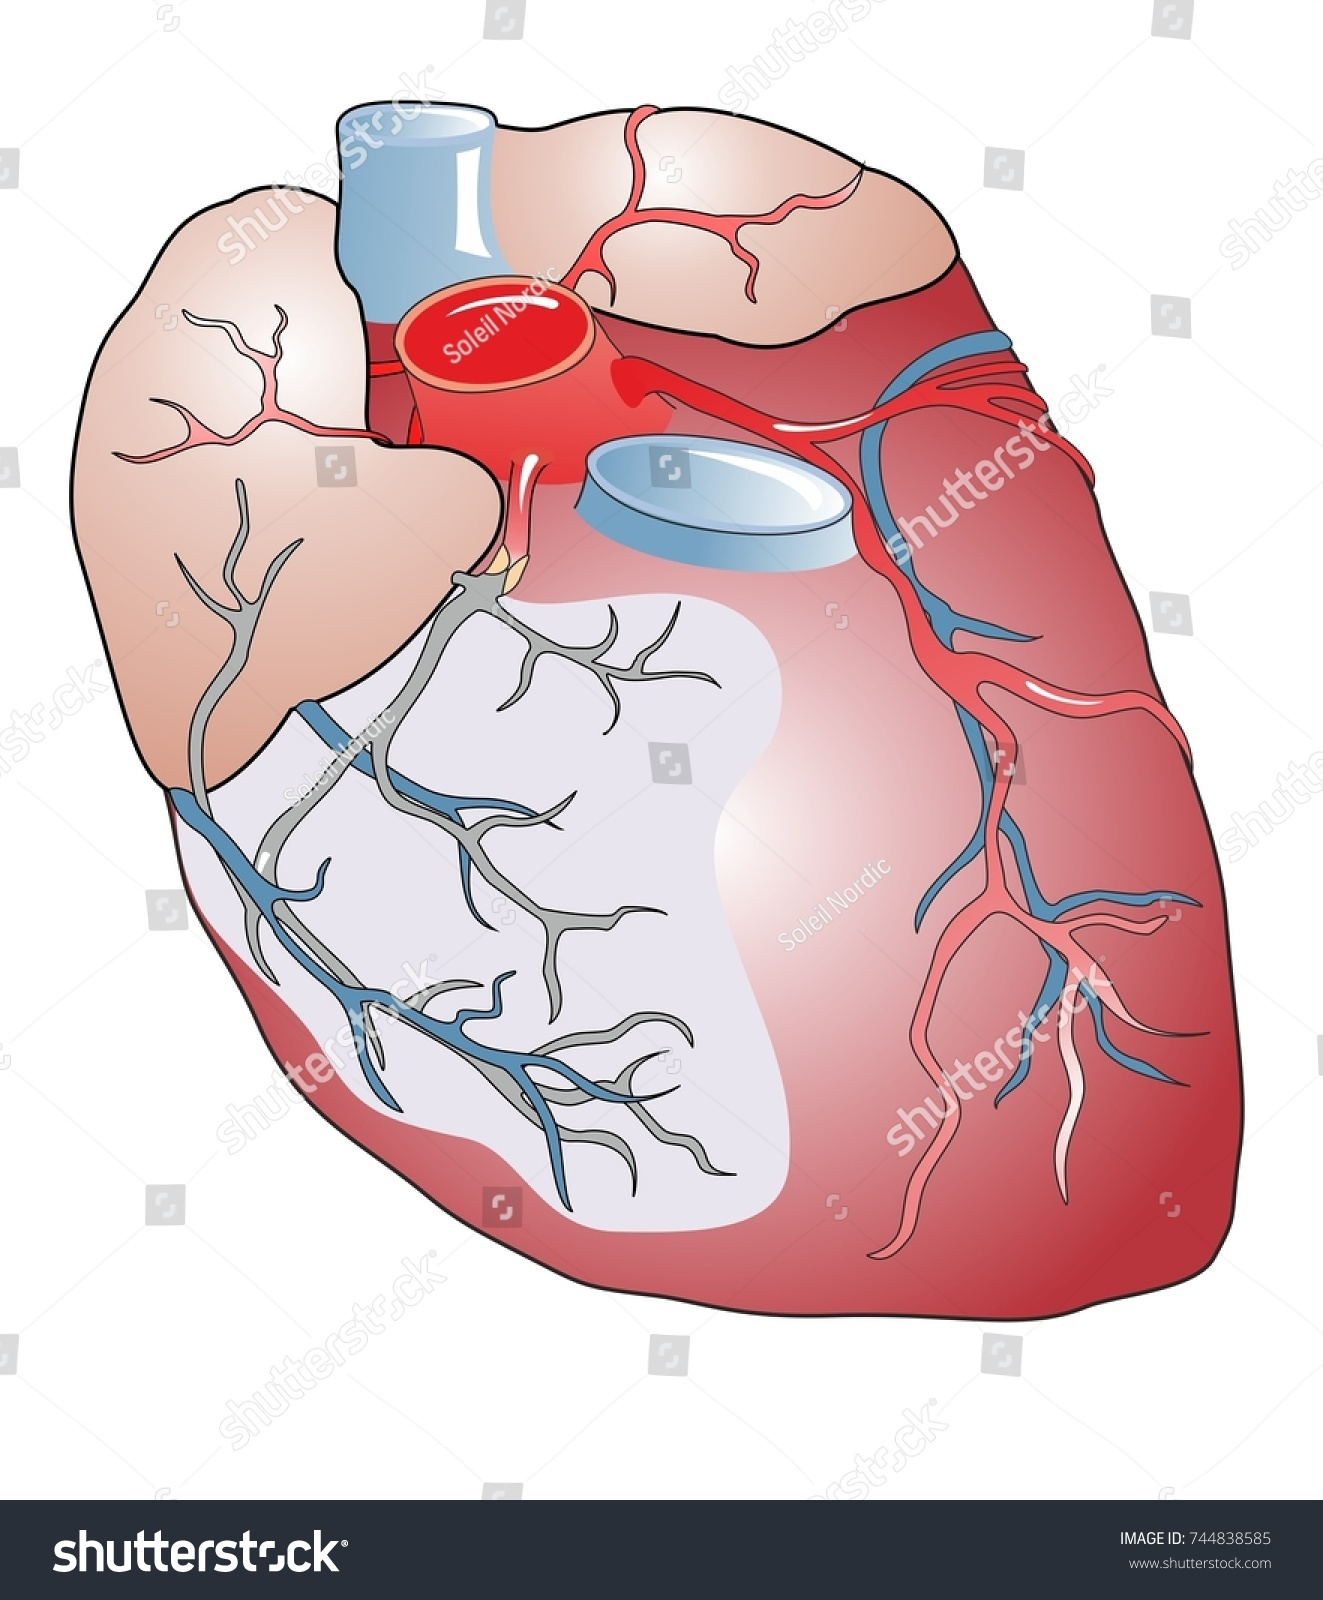 Myocardial Infarction Heart Attack Occurs When Stock Illustration